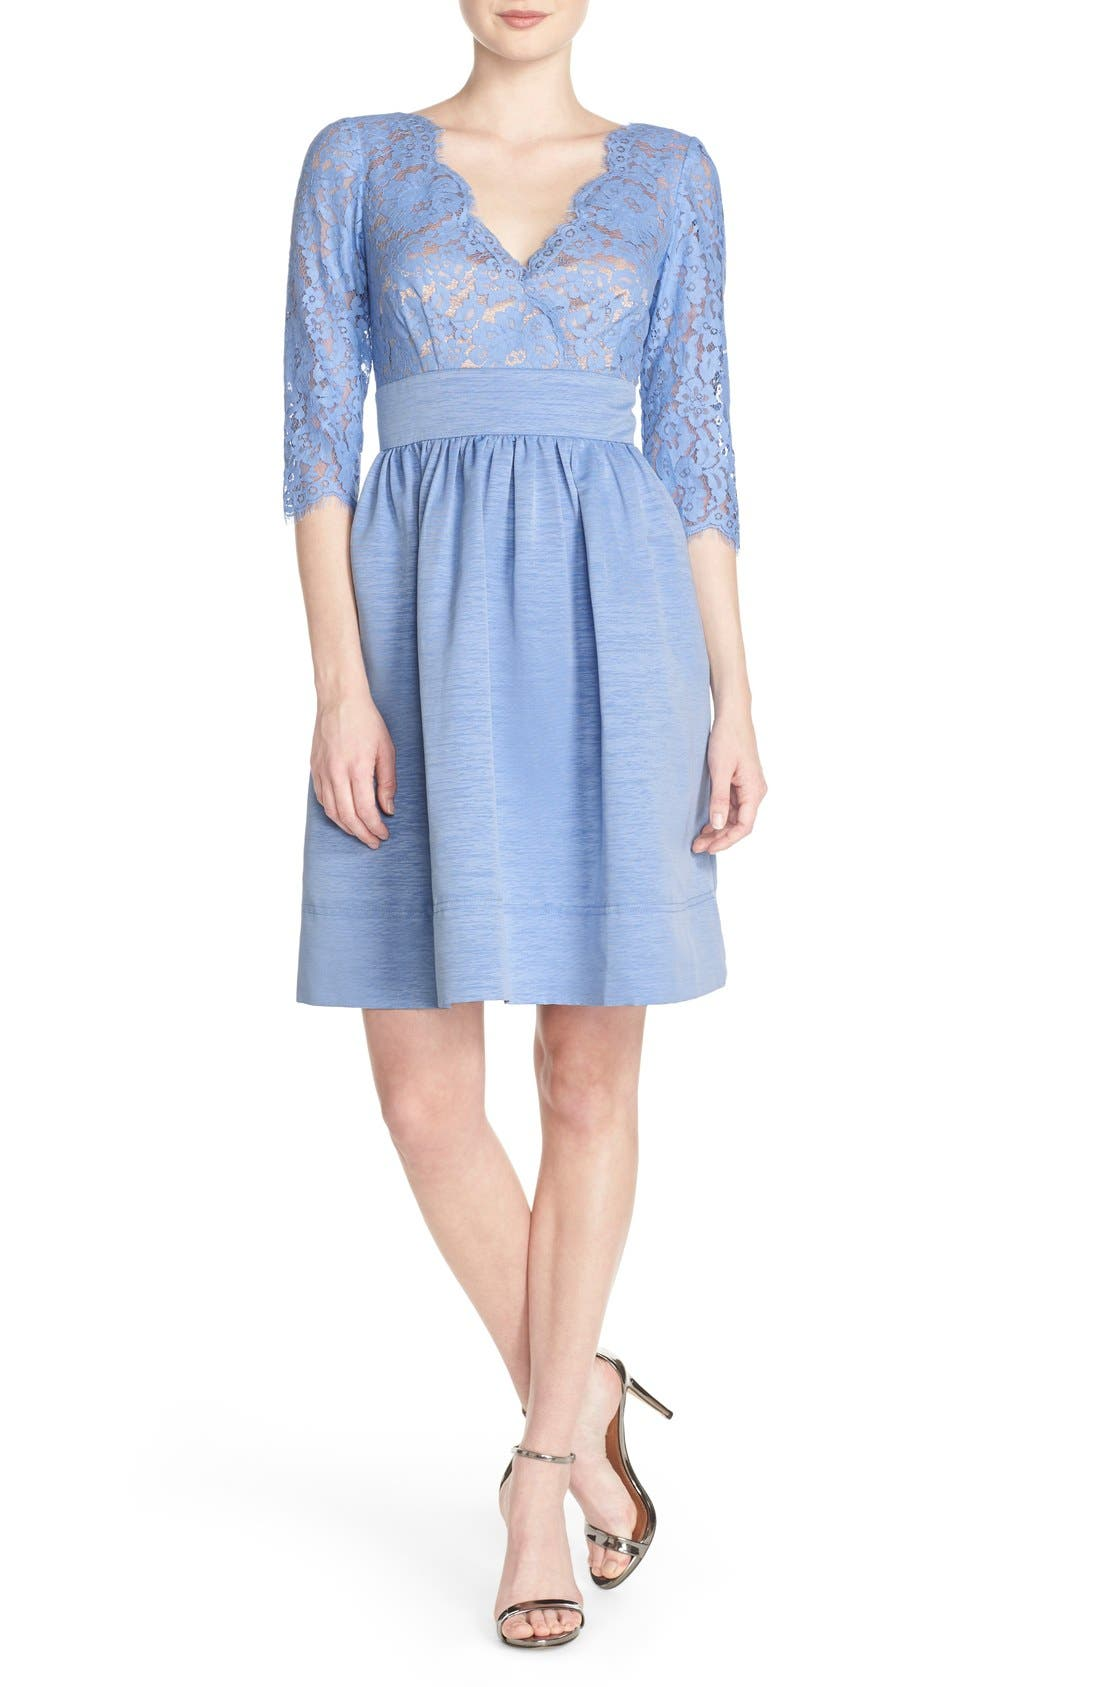 Alternate Image 1 Selected - Eliza J Lace & Faille Dress (Regular & Petite)